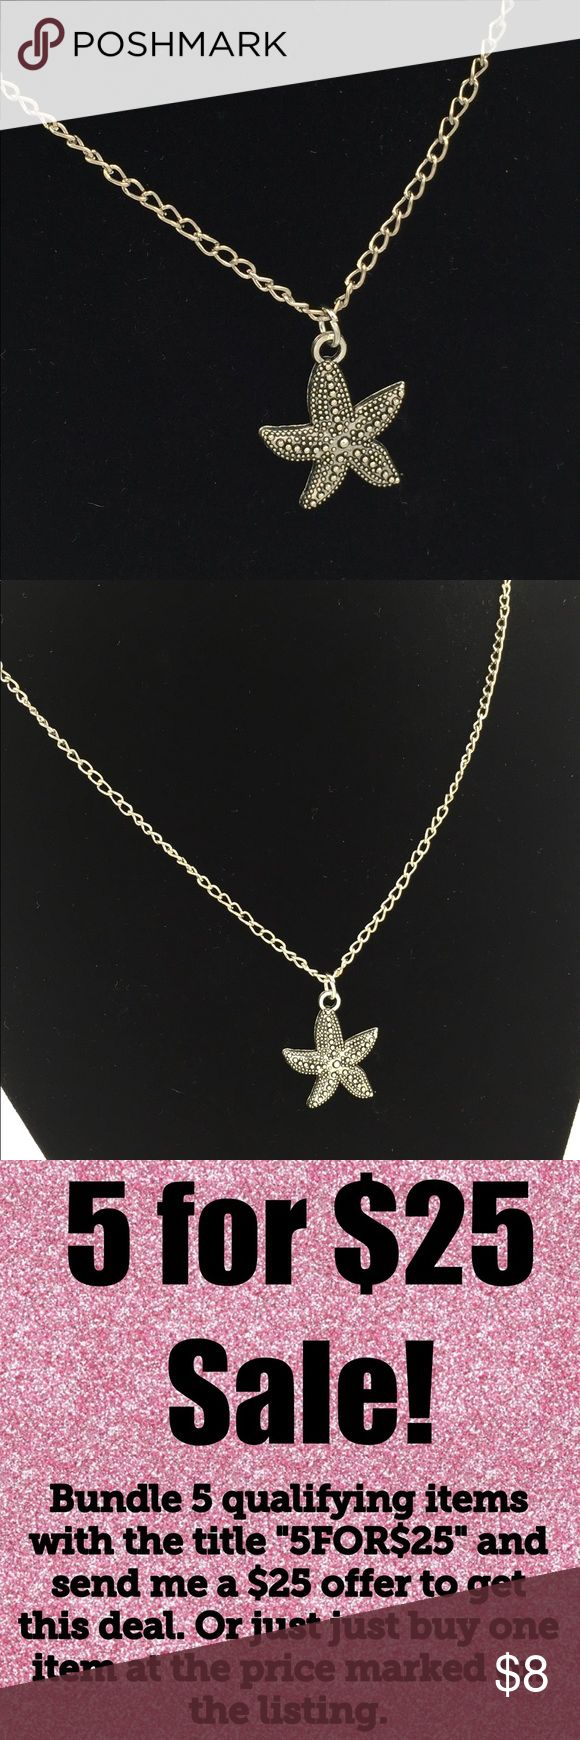 "🎉5/$25🎉 Starfish Necklace Starfish Necklace Silver tone Chain approximately 20"" Matching earrings in other listing.   See my other listings with 5 for $25 SALE and save on a bundle! Lots of clothes, makeup and new boutique items. Great for Christmas gift giving or stocking stuffers. I love accepting offers. Jewelry Necklaces"